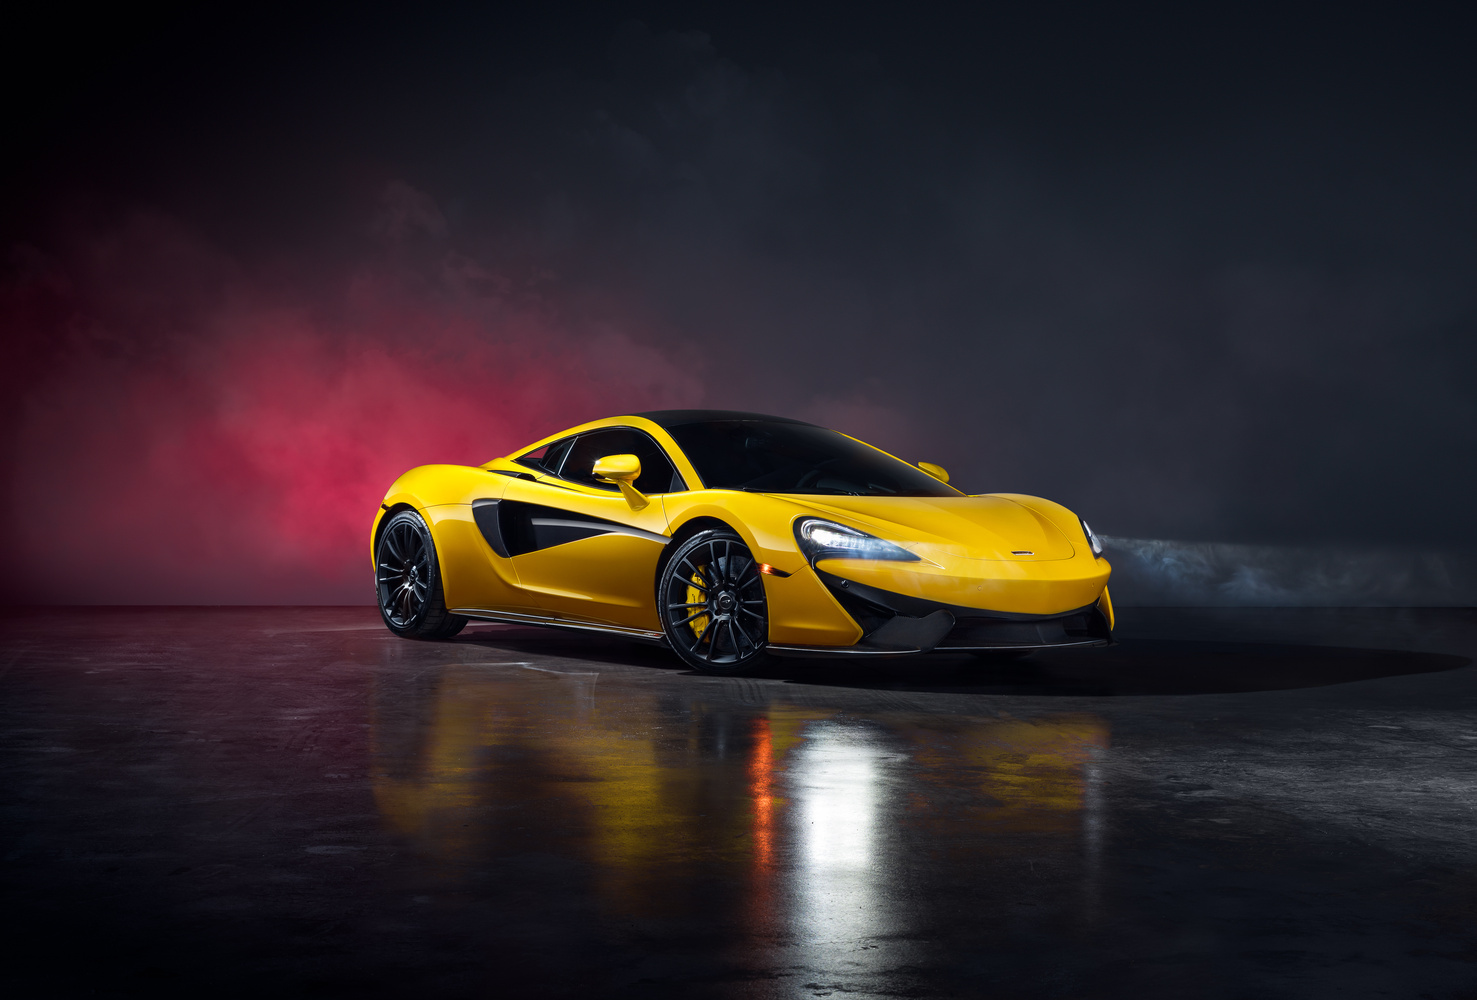 MSO McLaren 570S Hero Shot by Jimmy Zhang